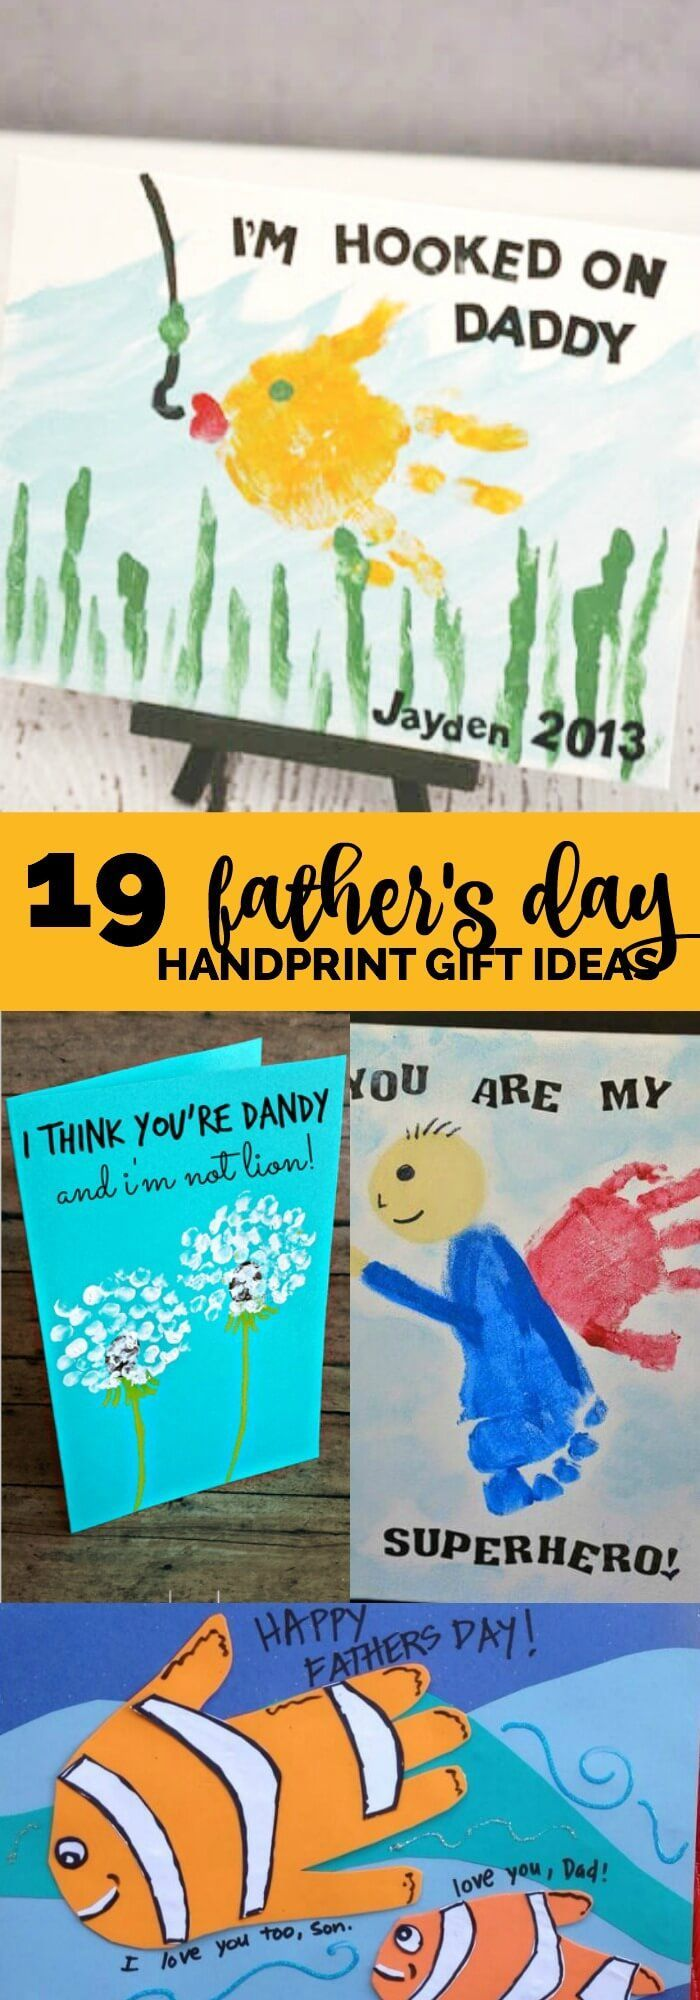 The 11 best images about Father\'s Day on Pinterest | Dads, Father\'s ...